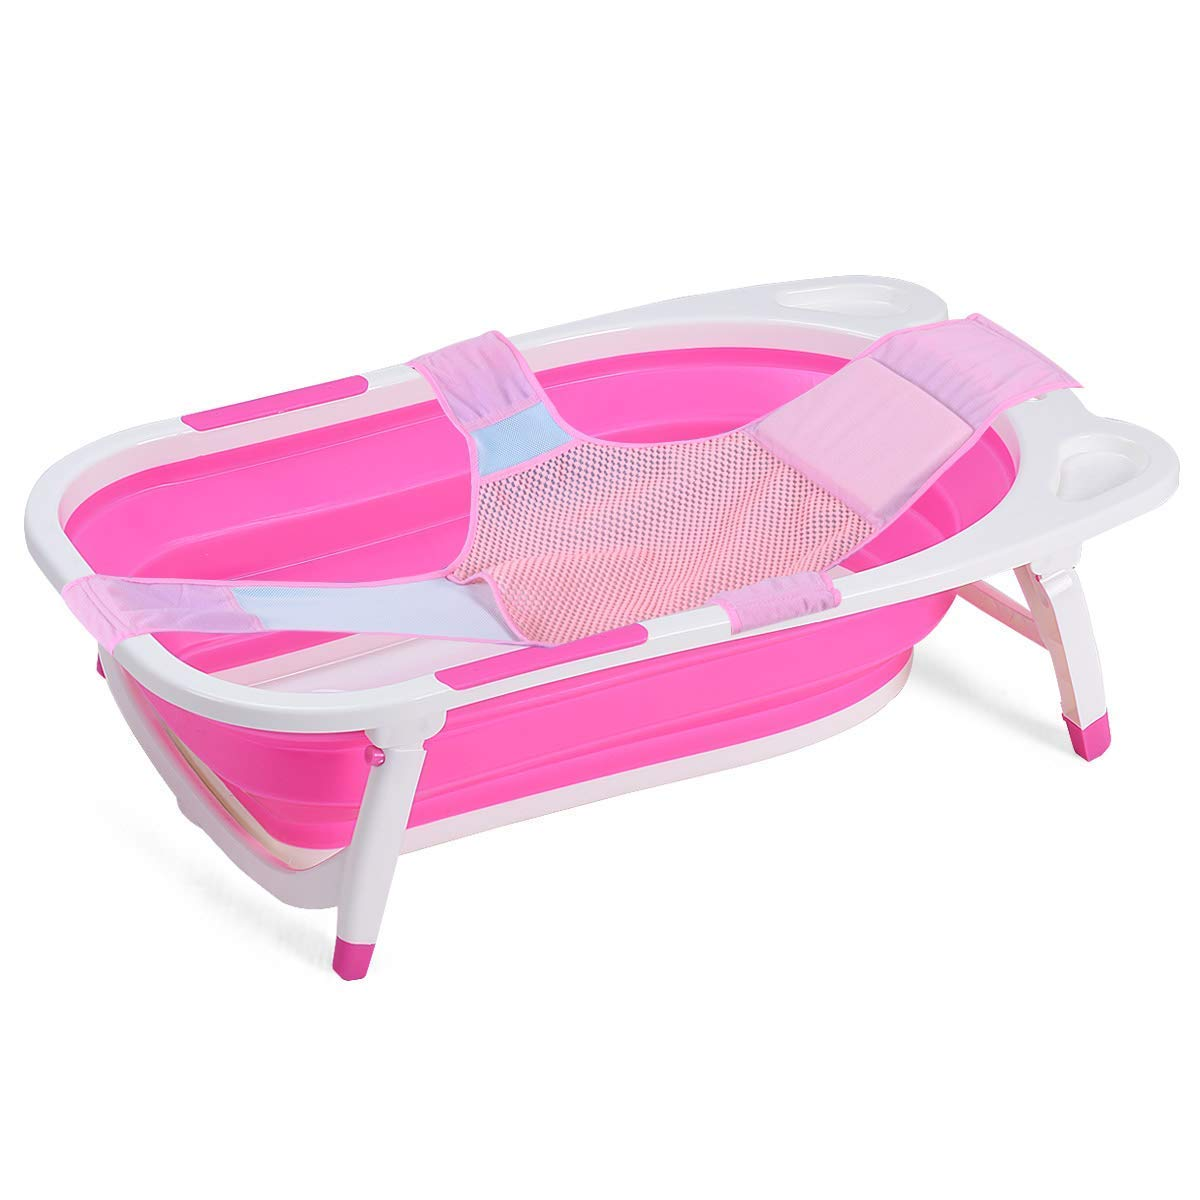 BABY JOY Baby Folding Bathtub, Infant Collapsible Portable Shower Basin (Pink)